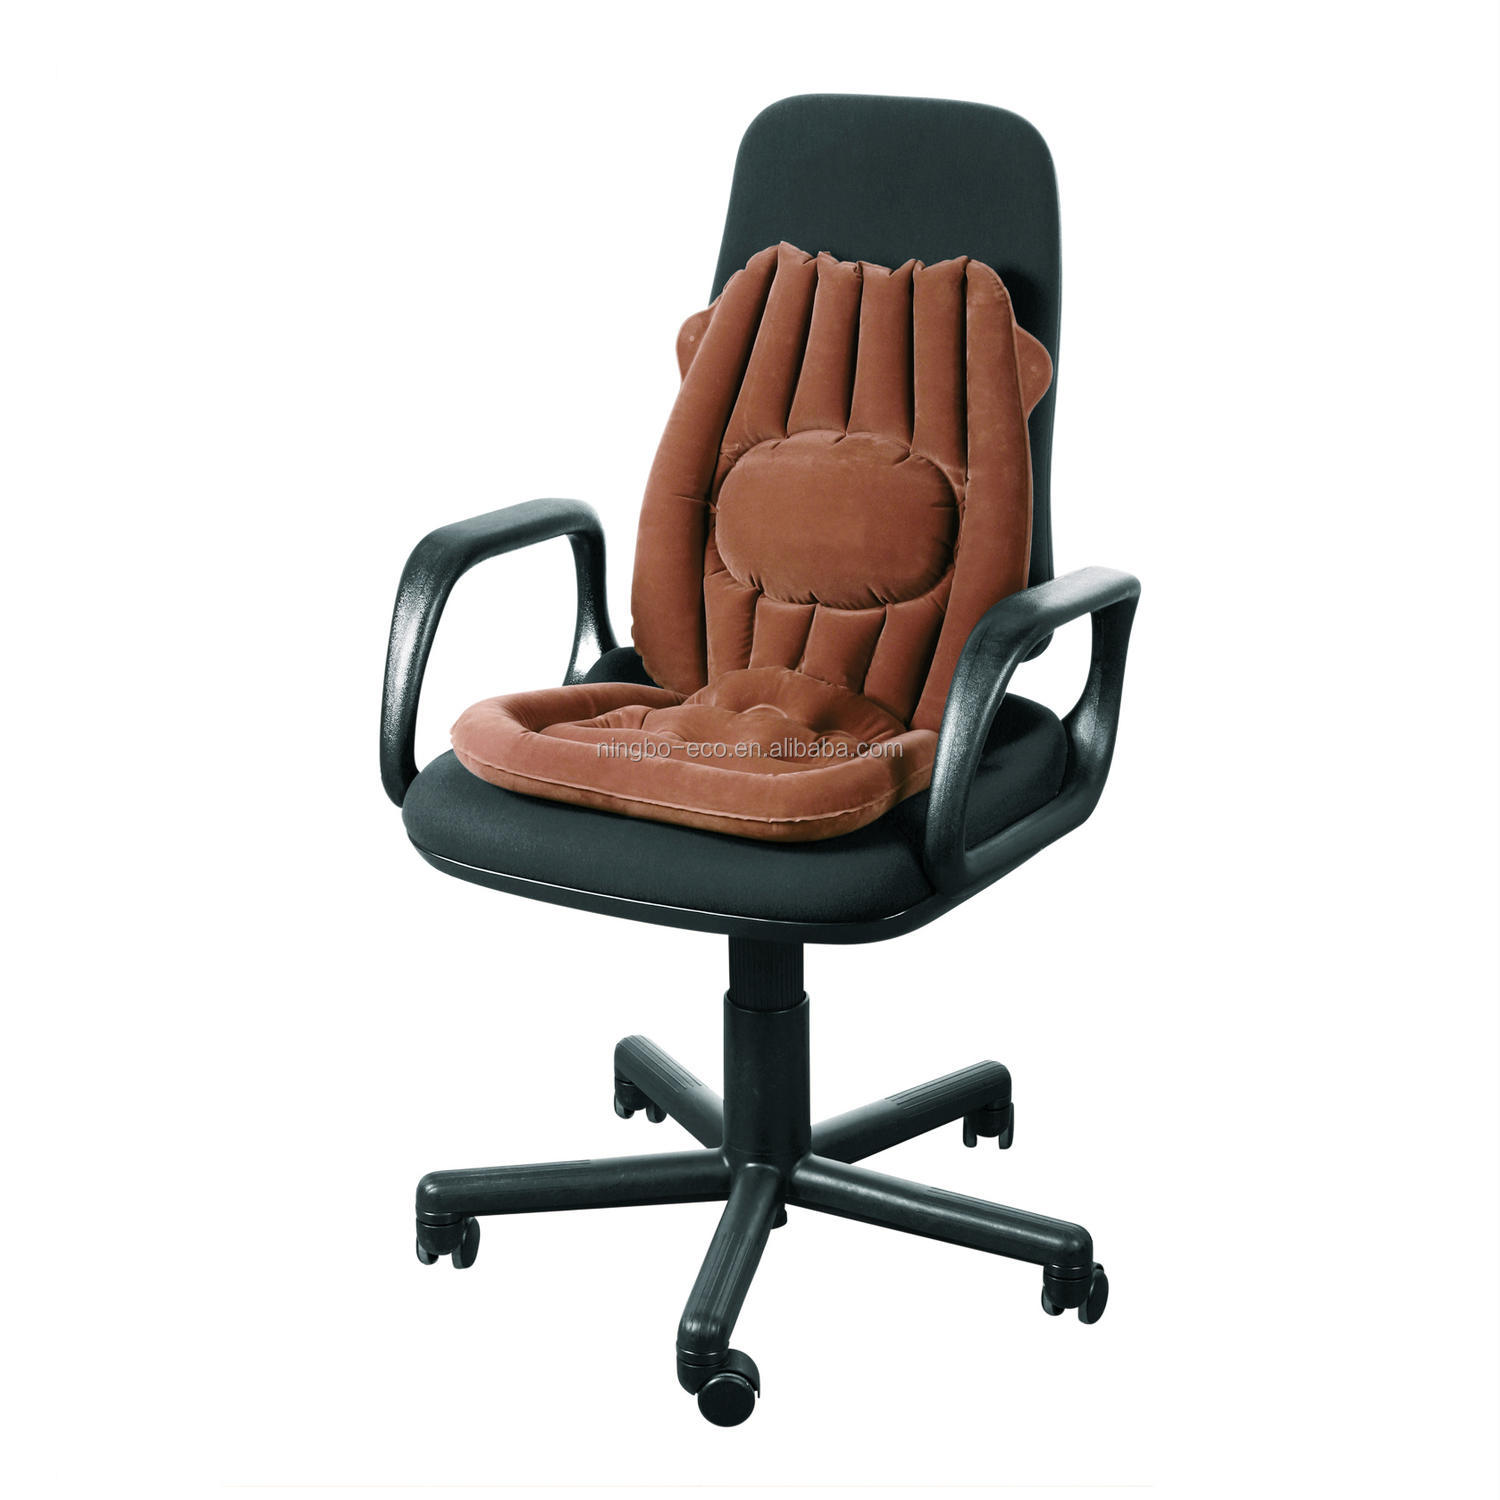 office organizing chair desk for seat cushion of best ideas